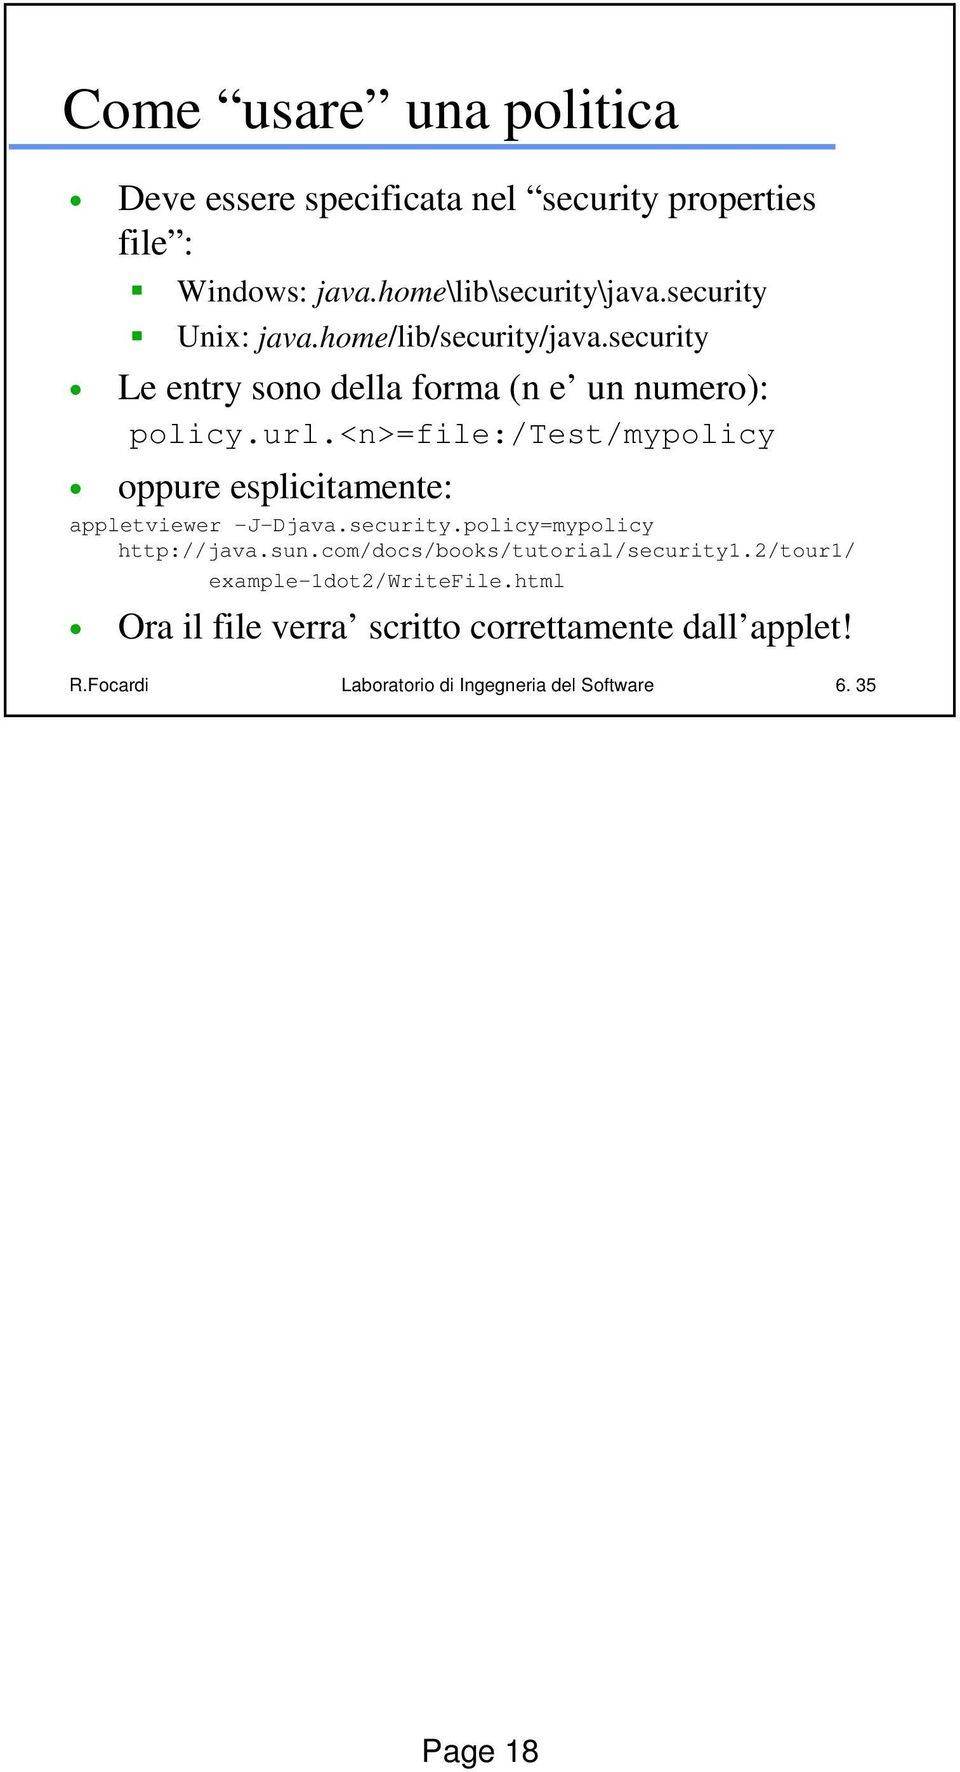 <n>=file:/test/mypolicy oppure esplicitamente: appletviewer -J-Djava.security.policy=mypolicy http://java.sun.